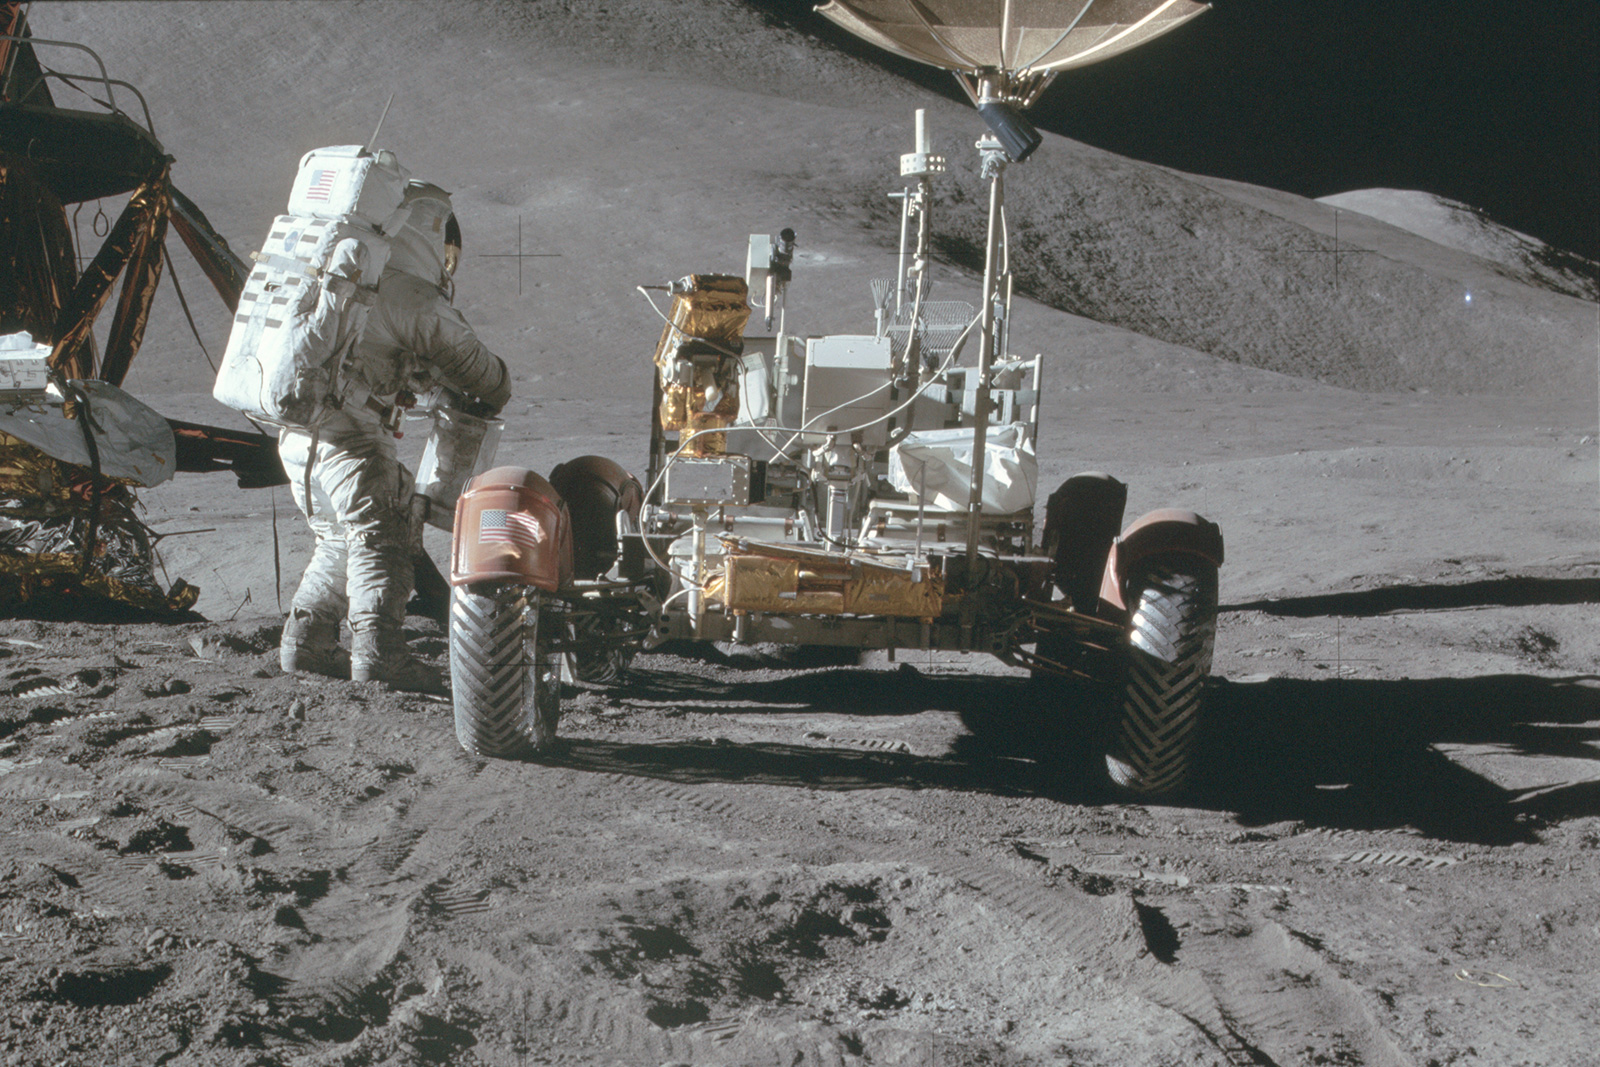 People first flew to the moon 50 years ago today